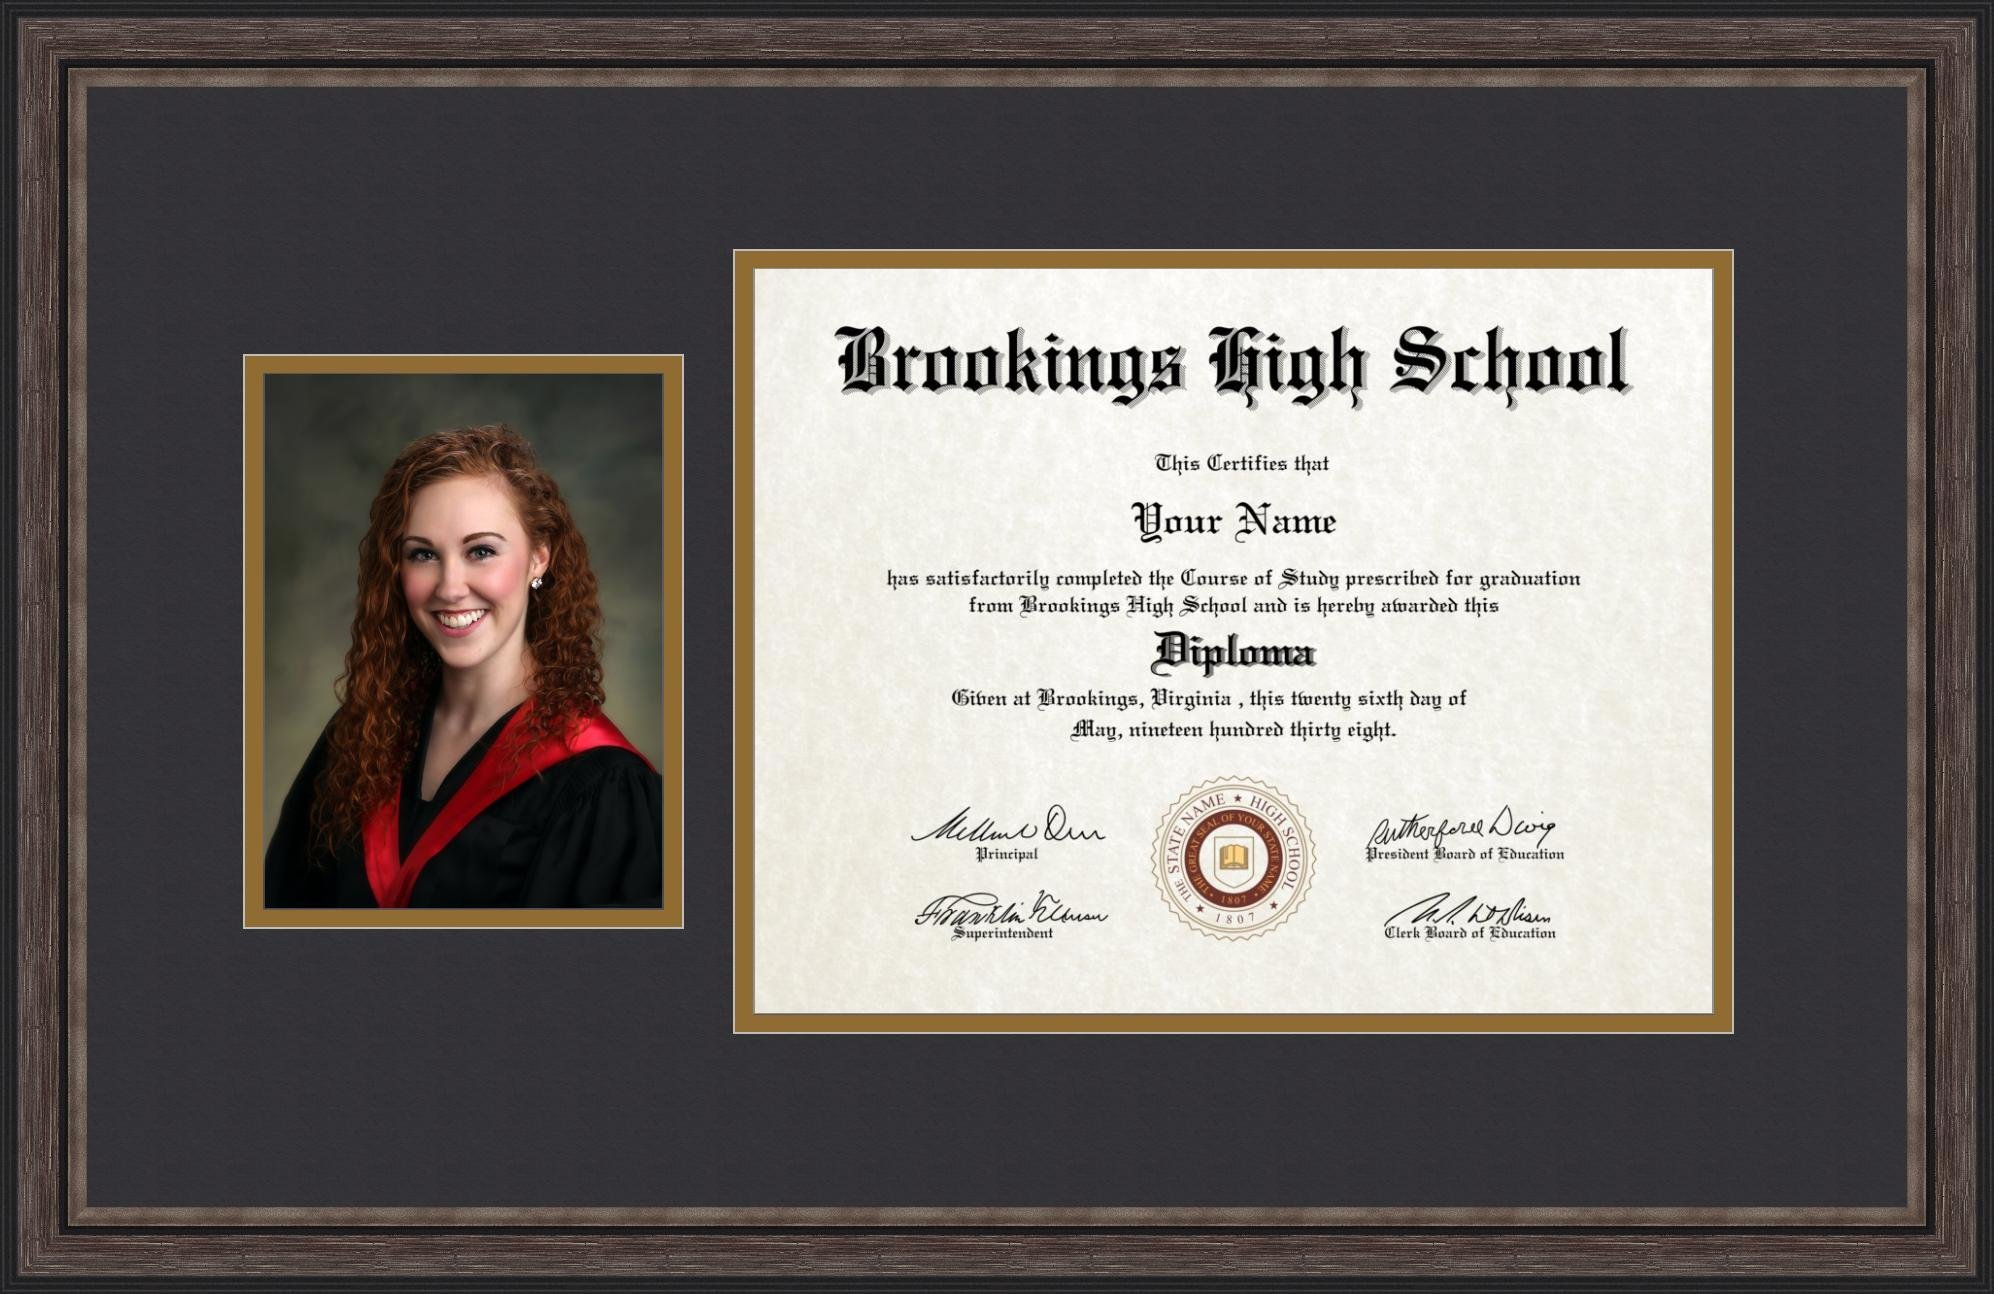 ArtToFrames 11x14 Diploma Frame with 6x8 Picture Opening - Framed in Grey and Black, Diploma-4225-89/596-0066-83120-YGRY